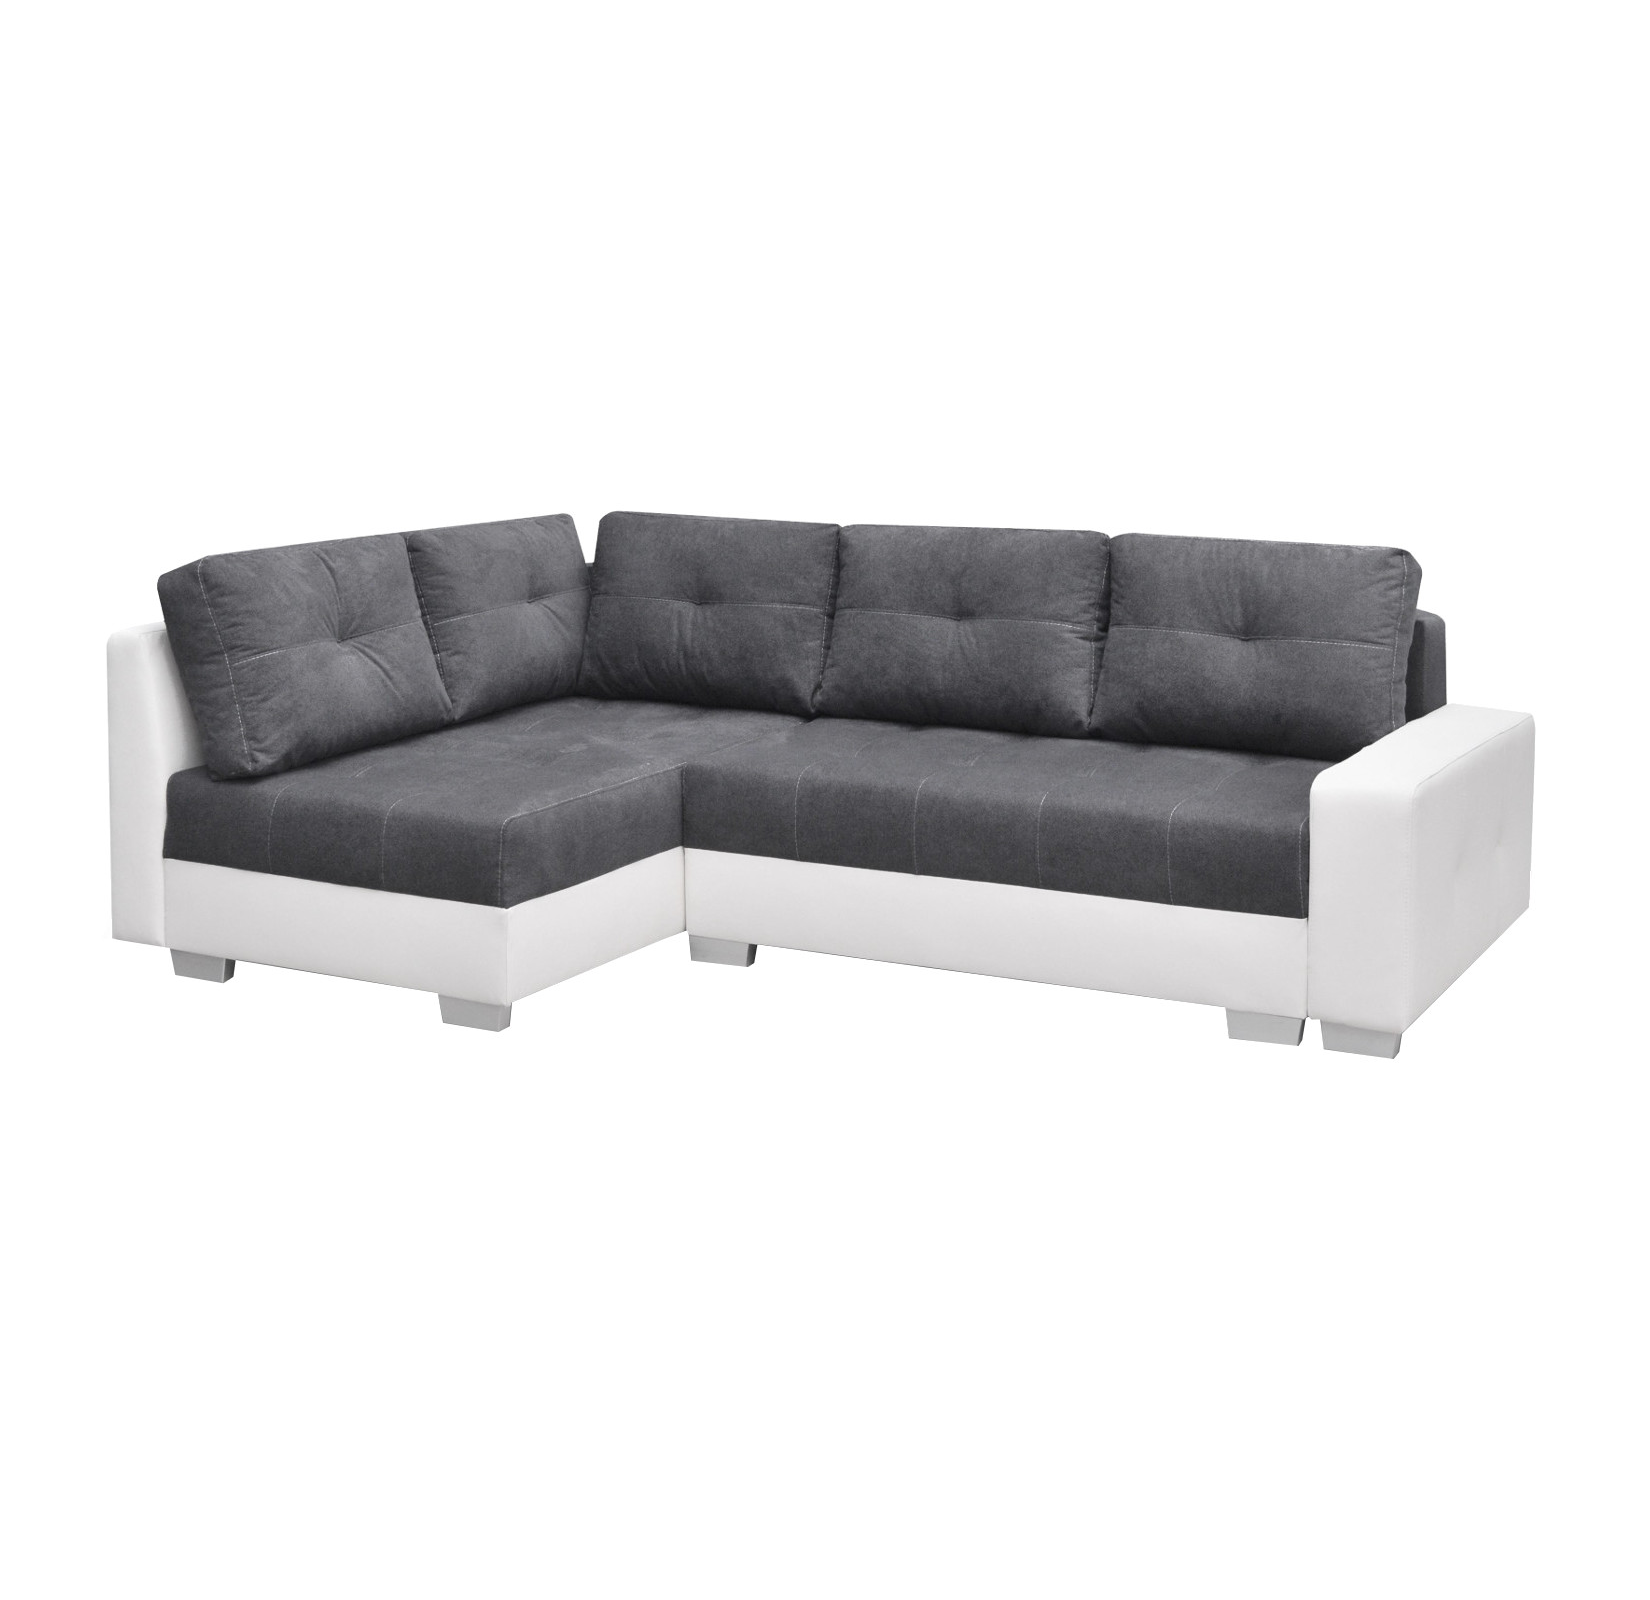 ecksofa bahama ii anthrazit m bel muller braun. Black Bedroom Furniture Sets. Home Design Ideas